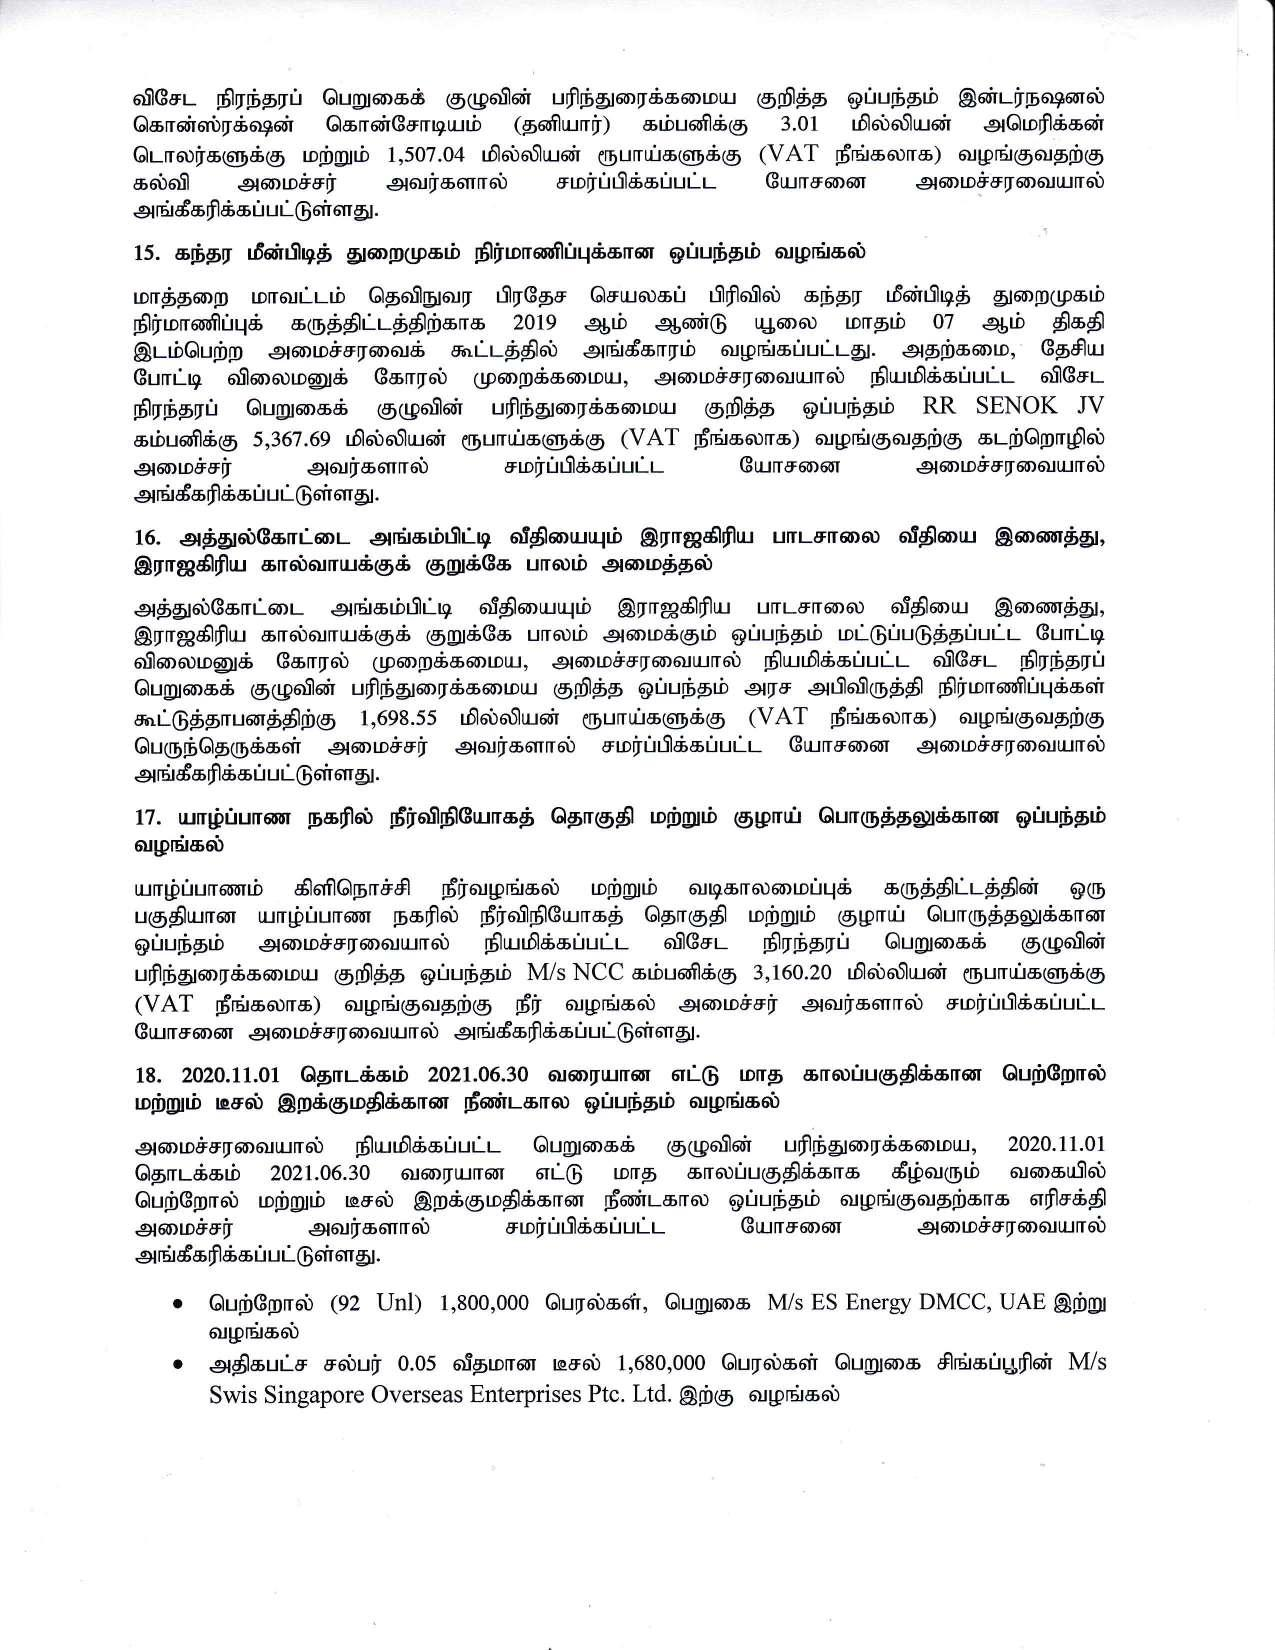 Cabinet Decsion on 09.11.2020 Tamil page 006